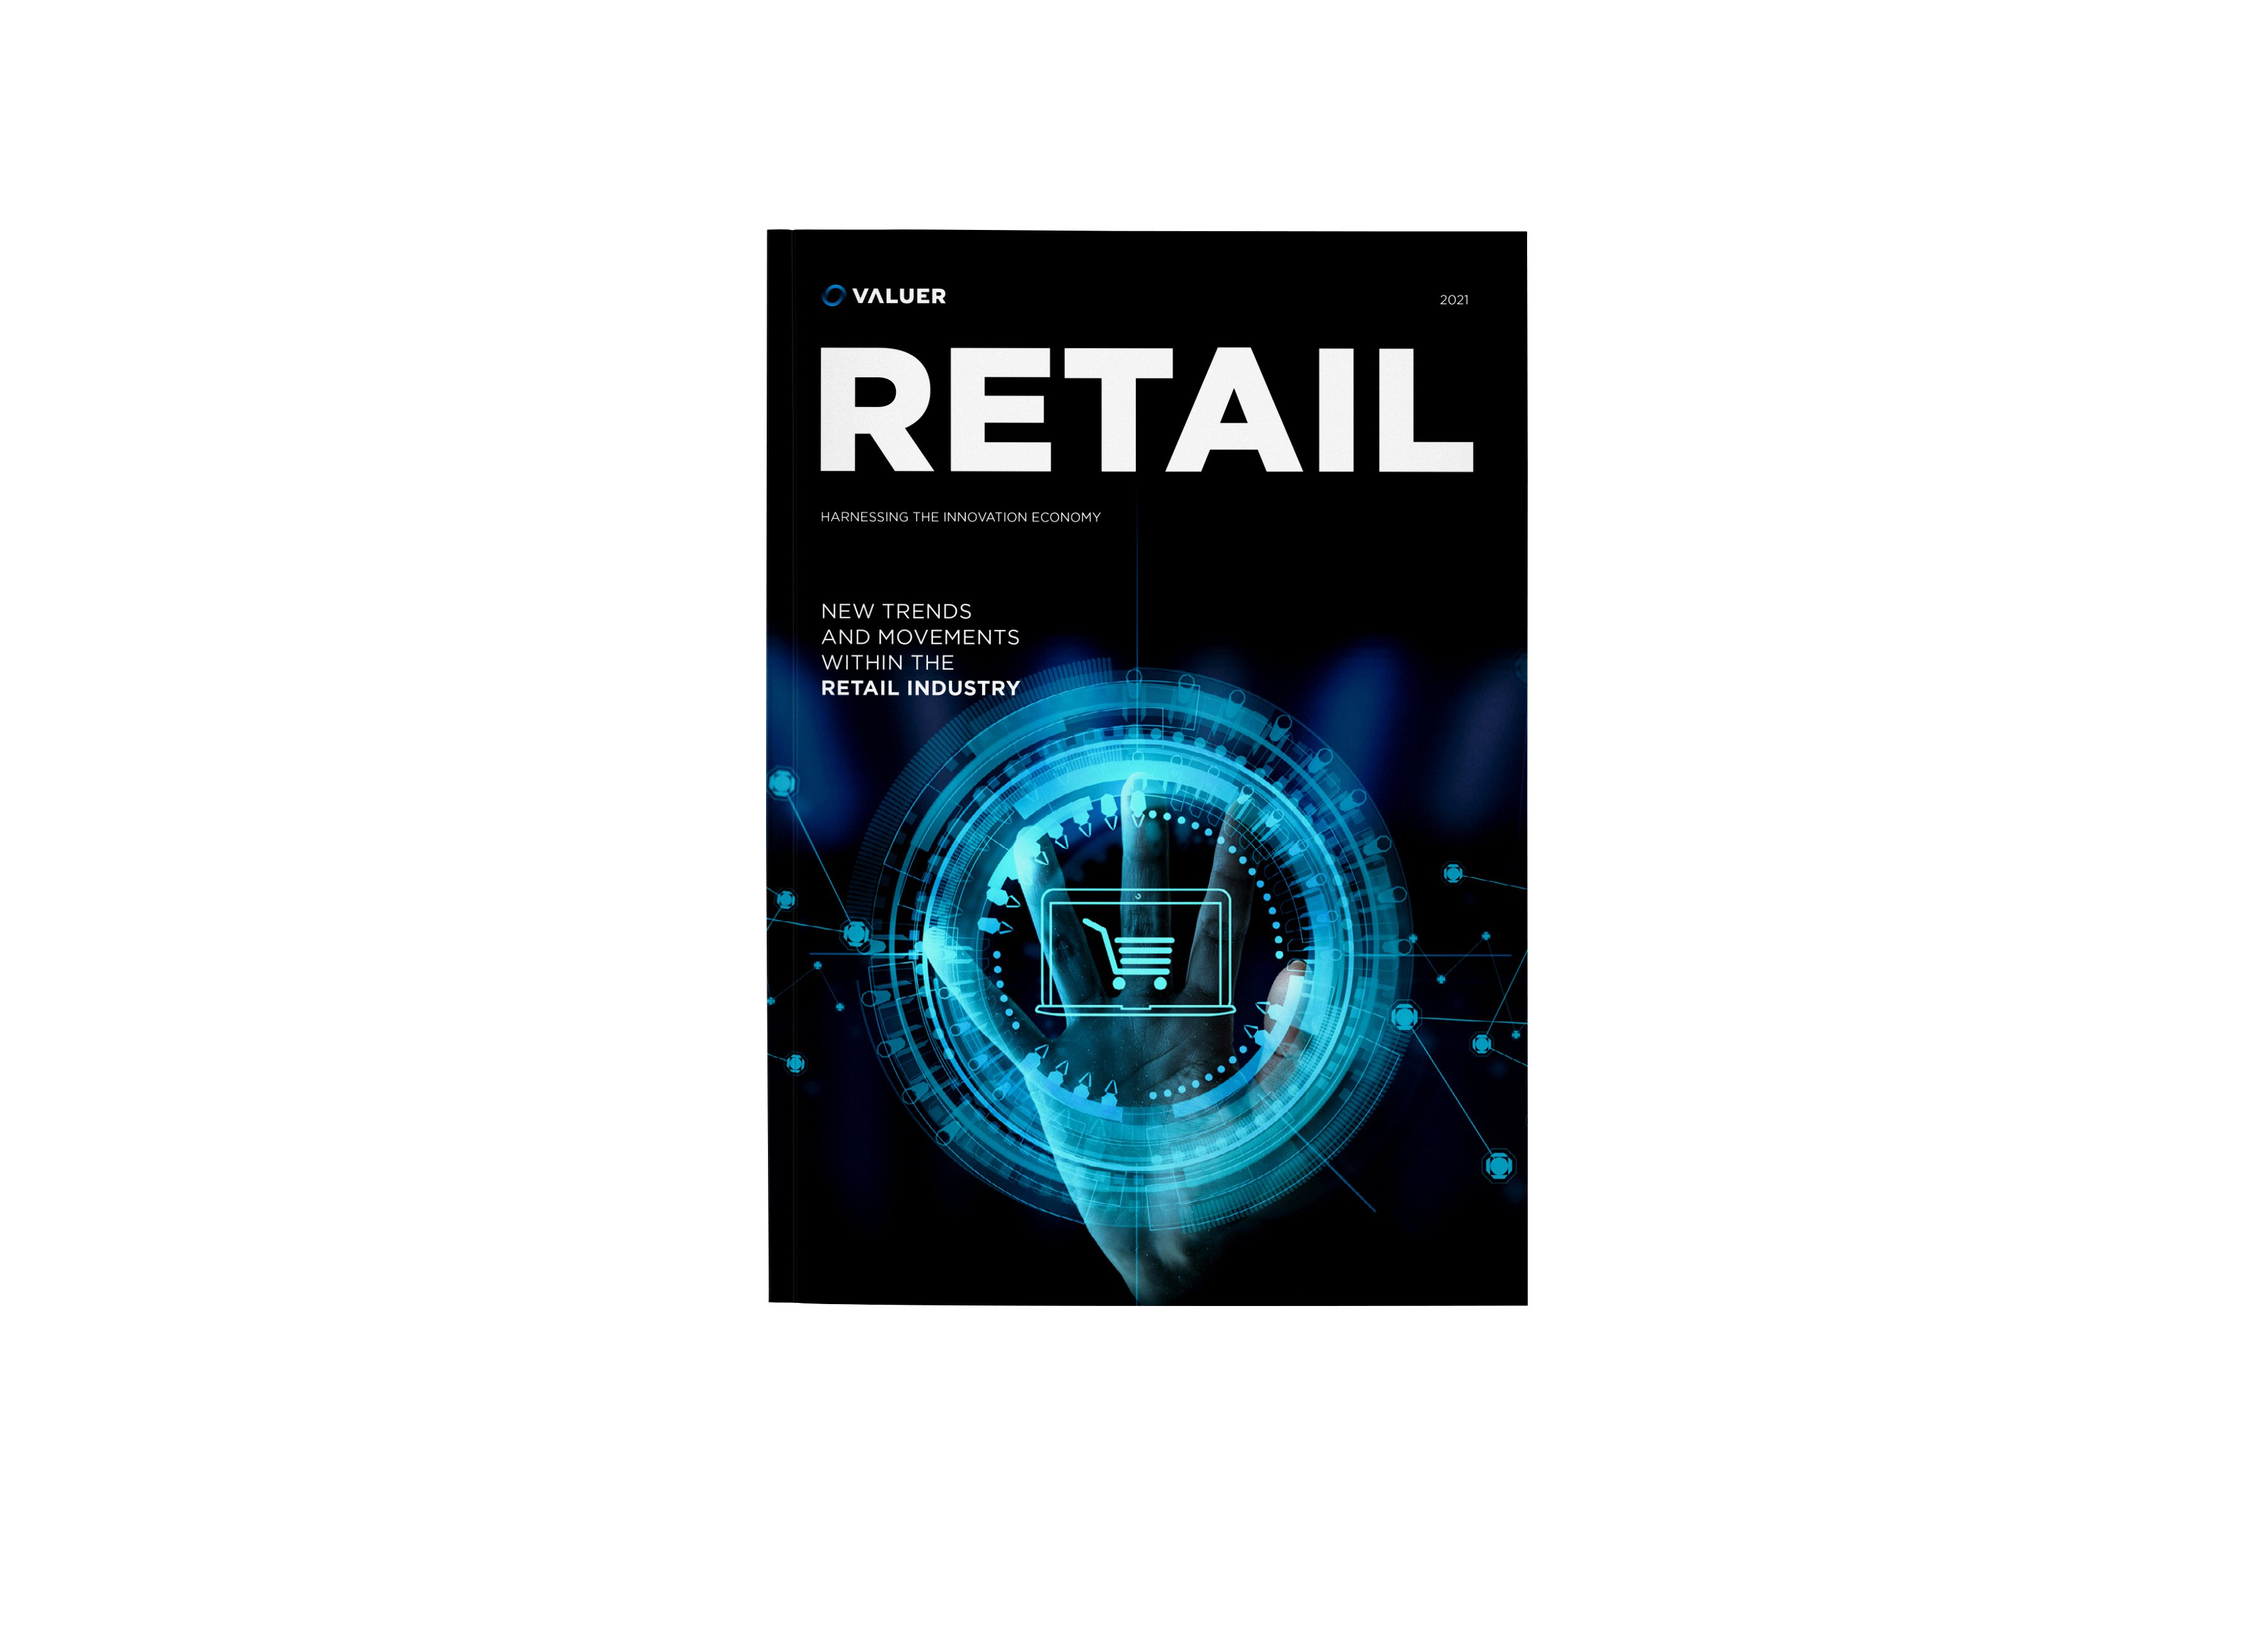 Insight Report Retail Valuer